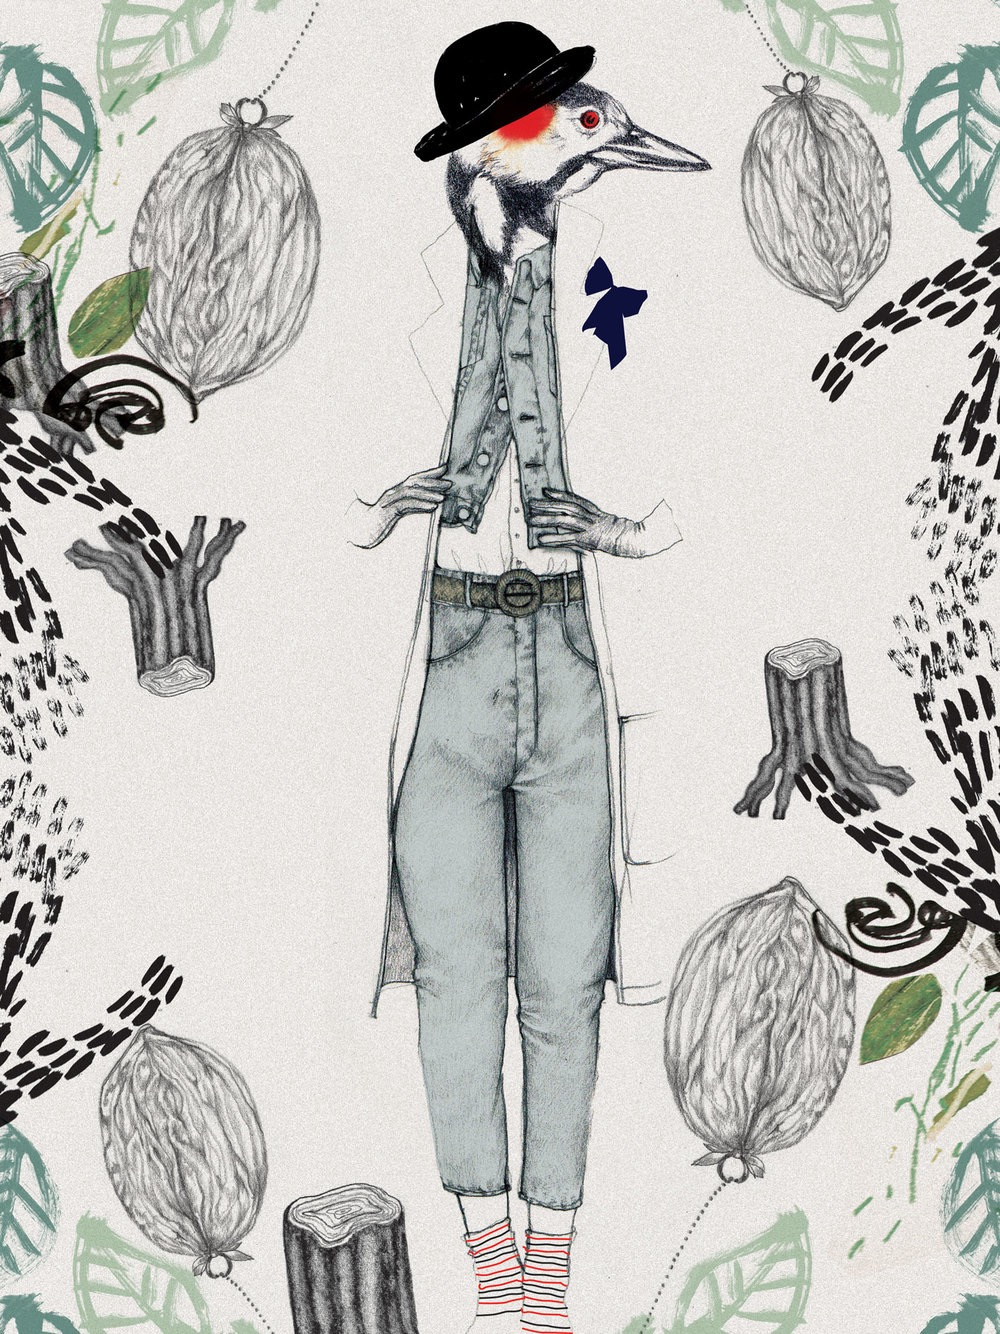 illustrator, illustrators, illustration, illustrations, leaf, leaves, print, stamp, tree trunk, bird, birds, walnut, walnuts, suit, suits, retro, hat, stippling